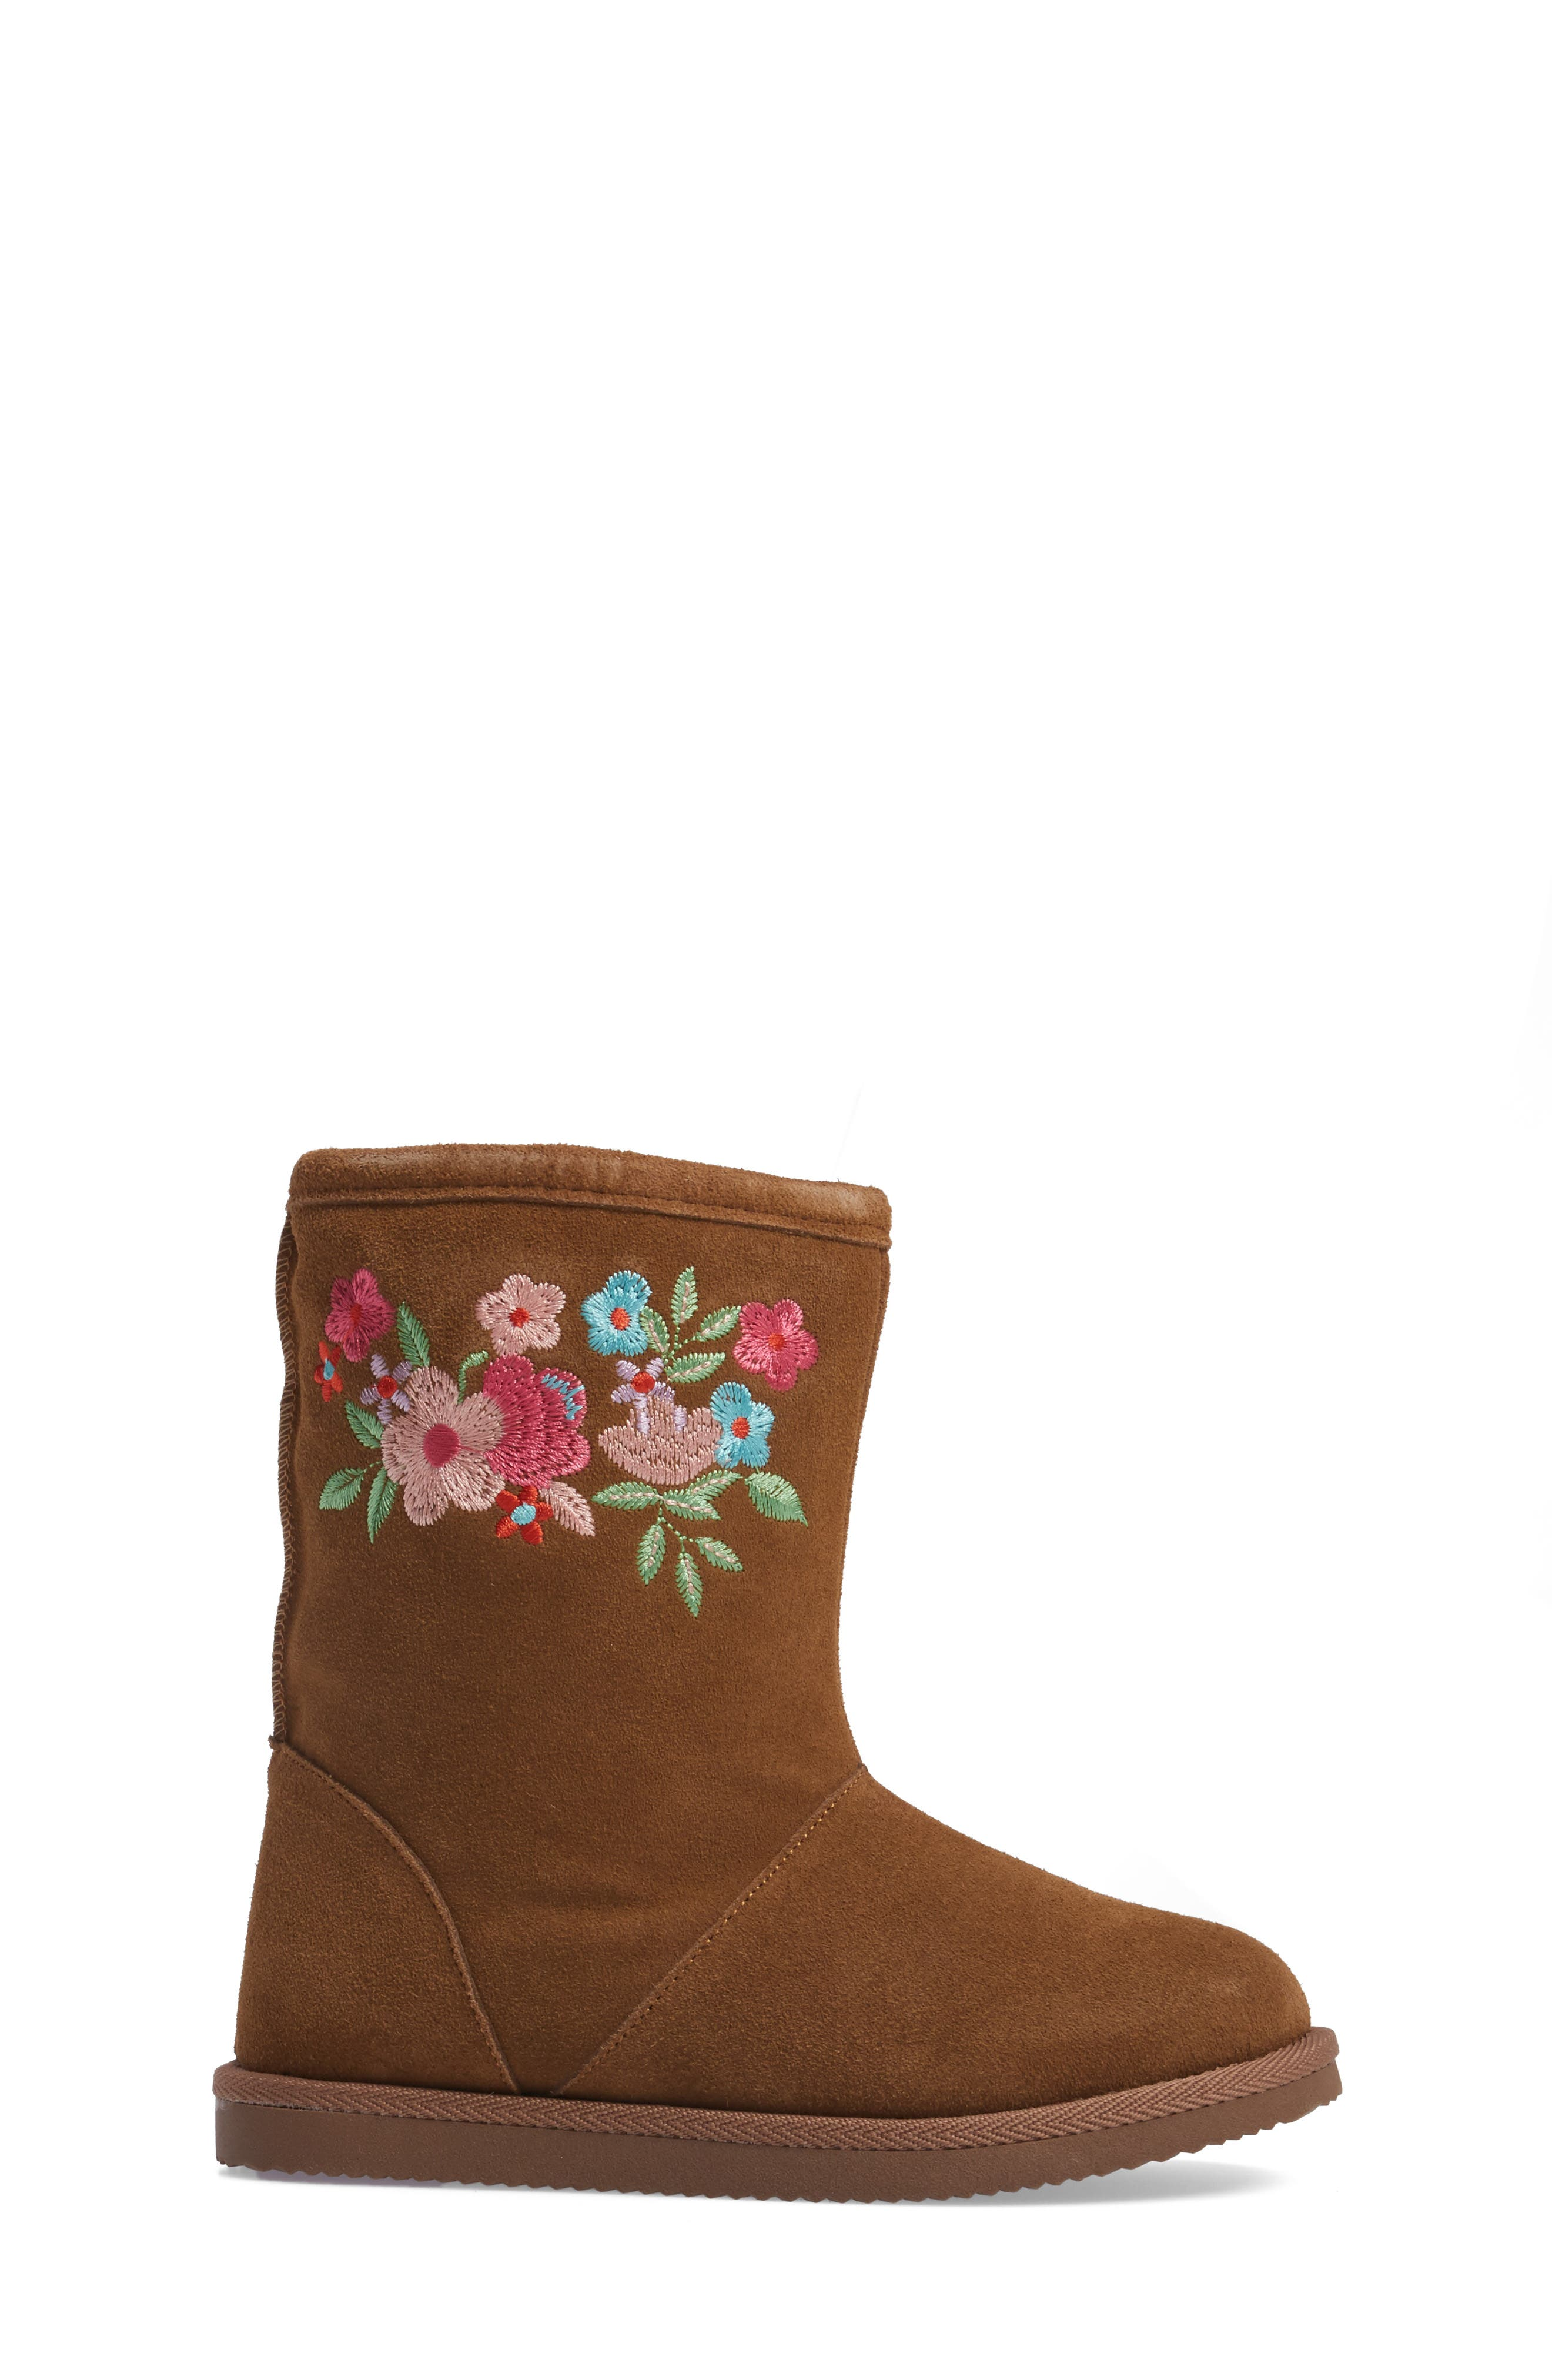 Aline Embroidered Faux Fur Boot,                             Alternate thumbnail 3, color,                             Chestnut Suede